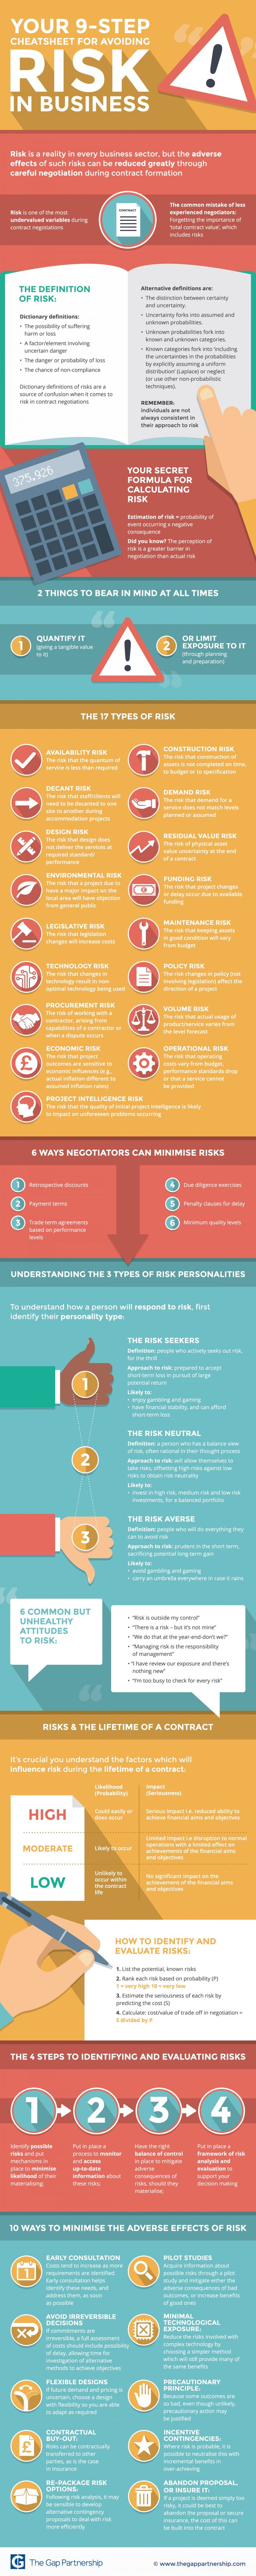 Your 9-Step Cheatsheet for Negotiating Risk in Business Infographic. Actually be careful with this infographic. Risk impact (and thus risk exposure) has both positive and negative aspects. Both need to be managed and included.